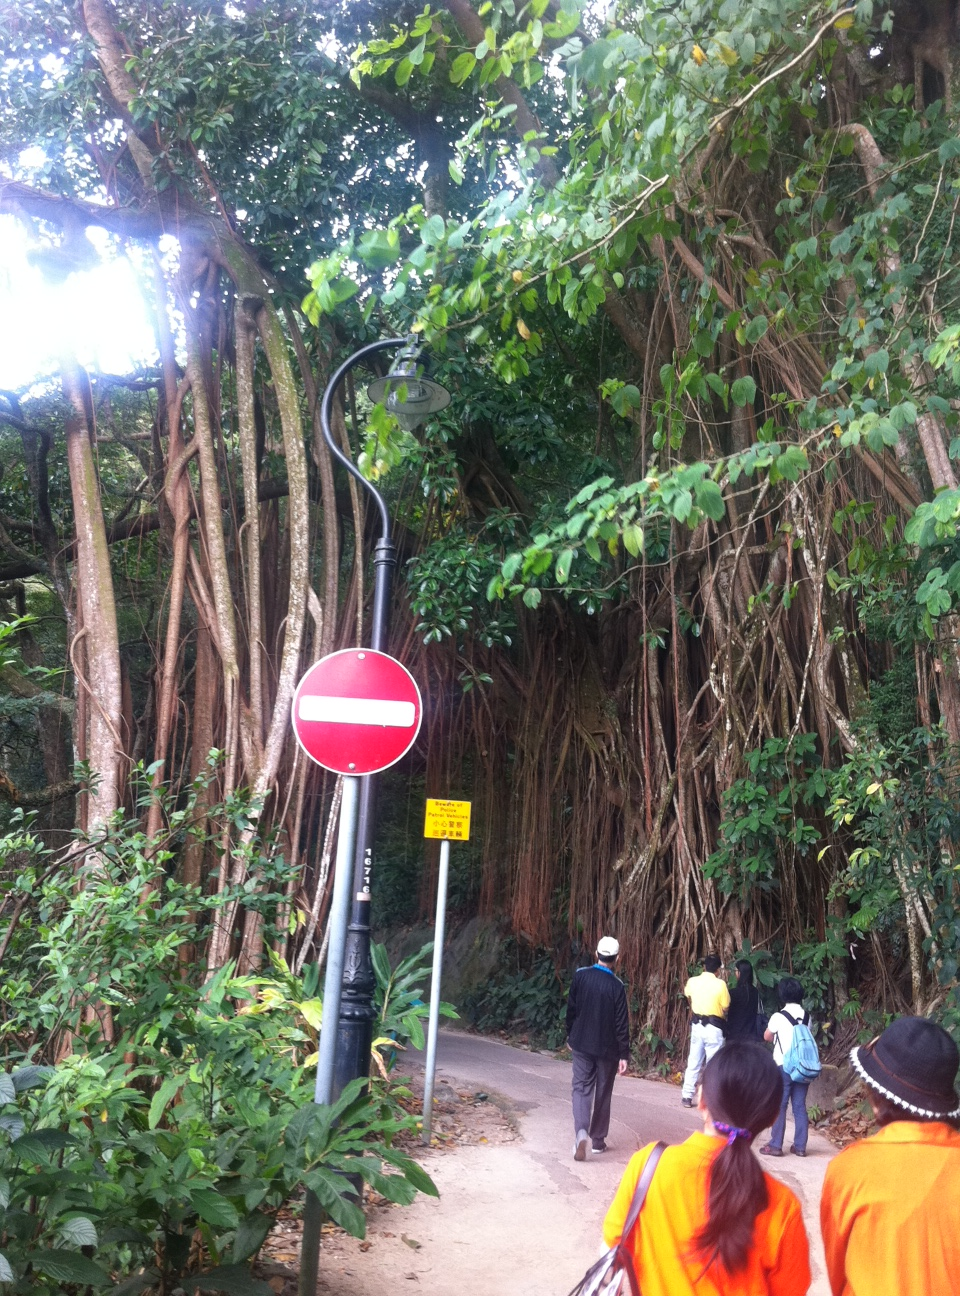 Large trees over the walkway like a gate